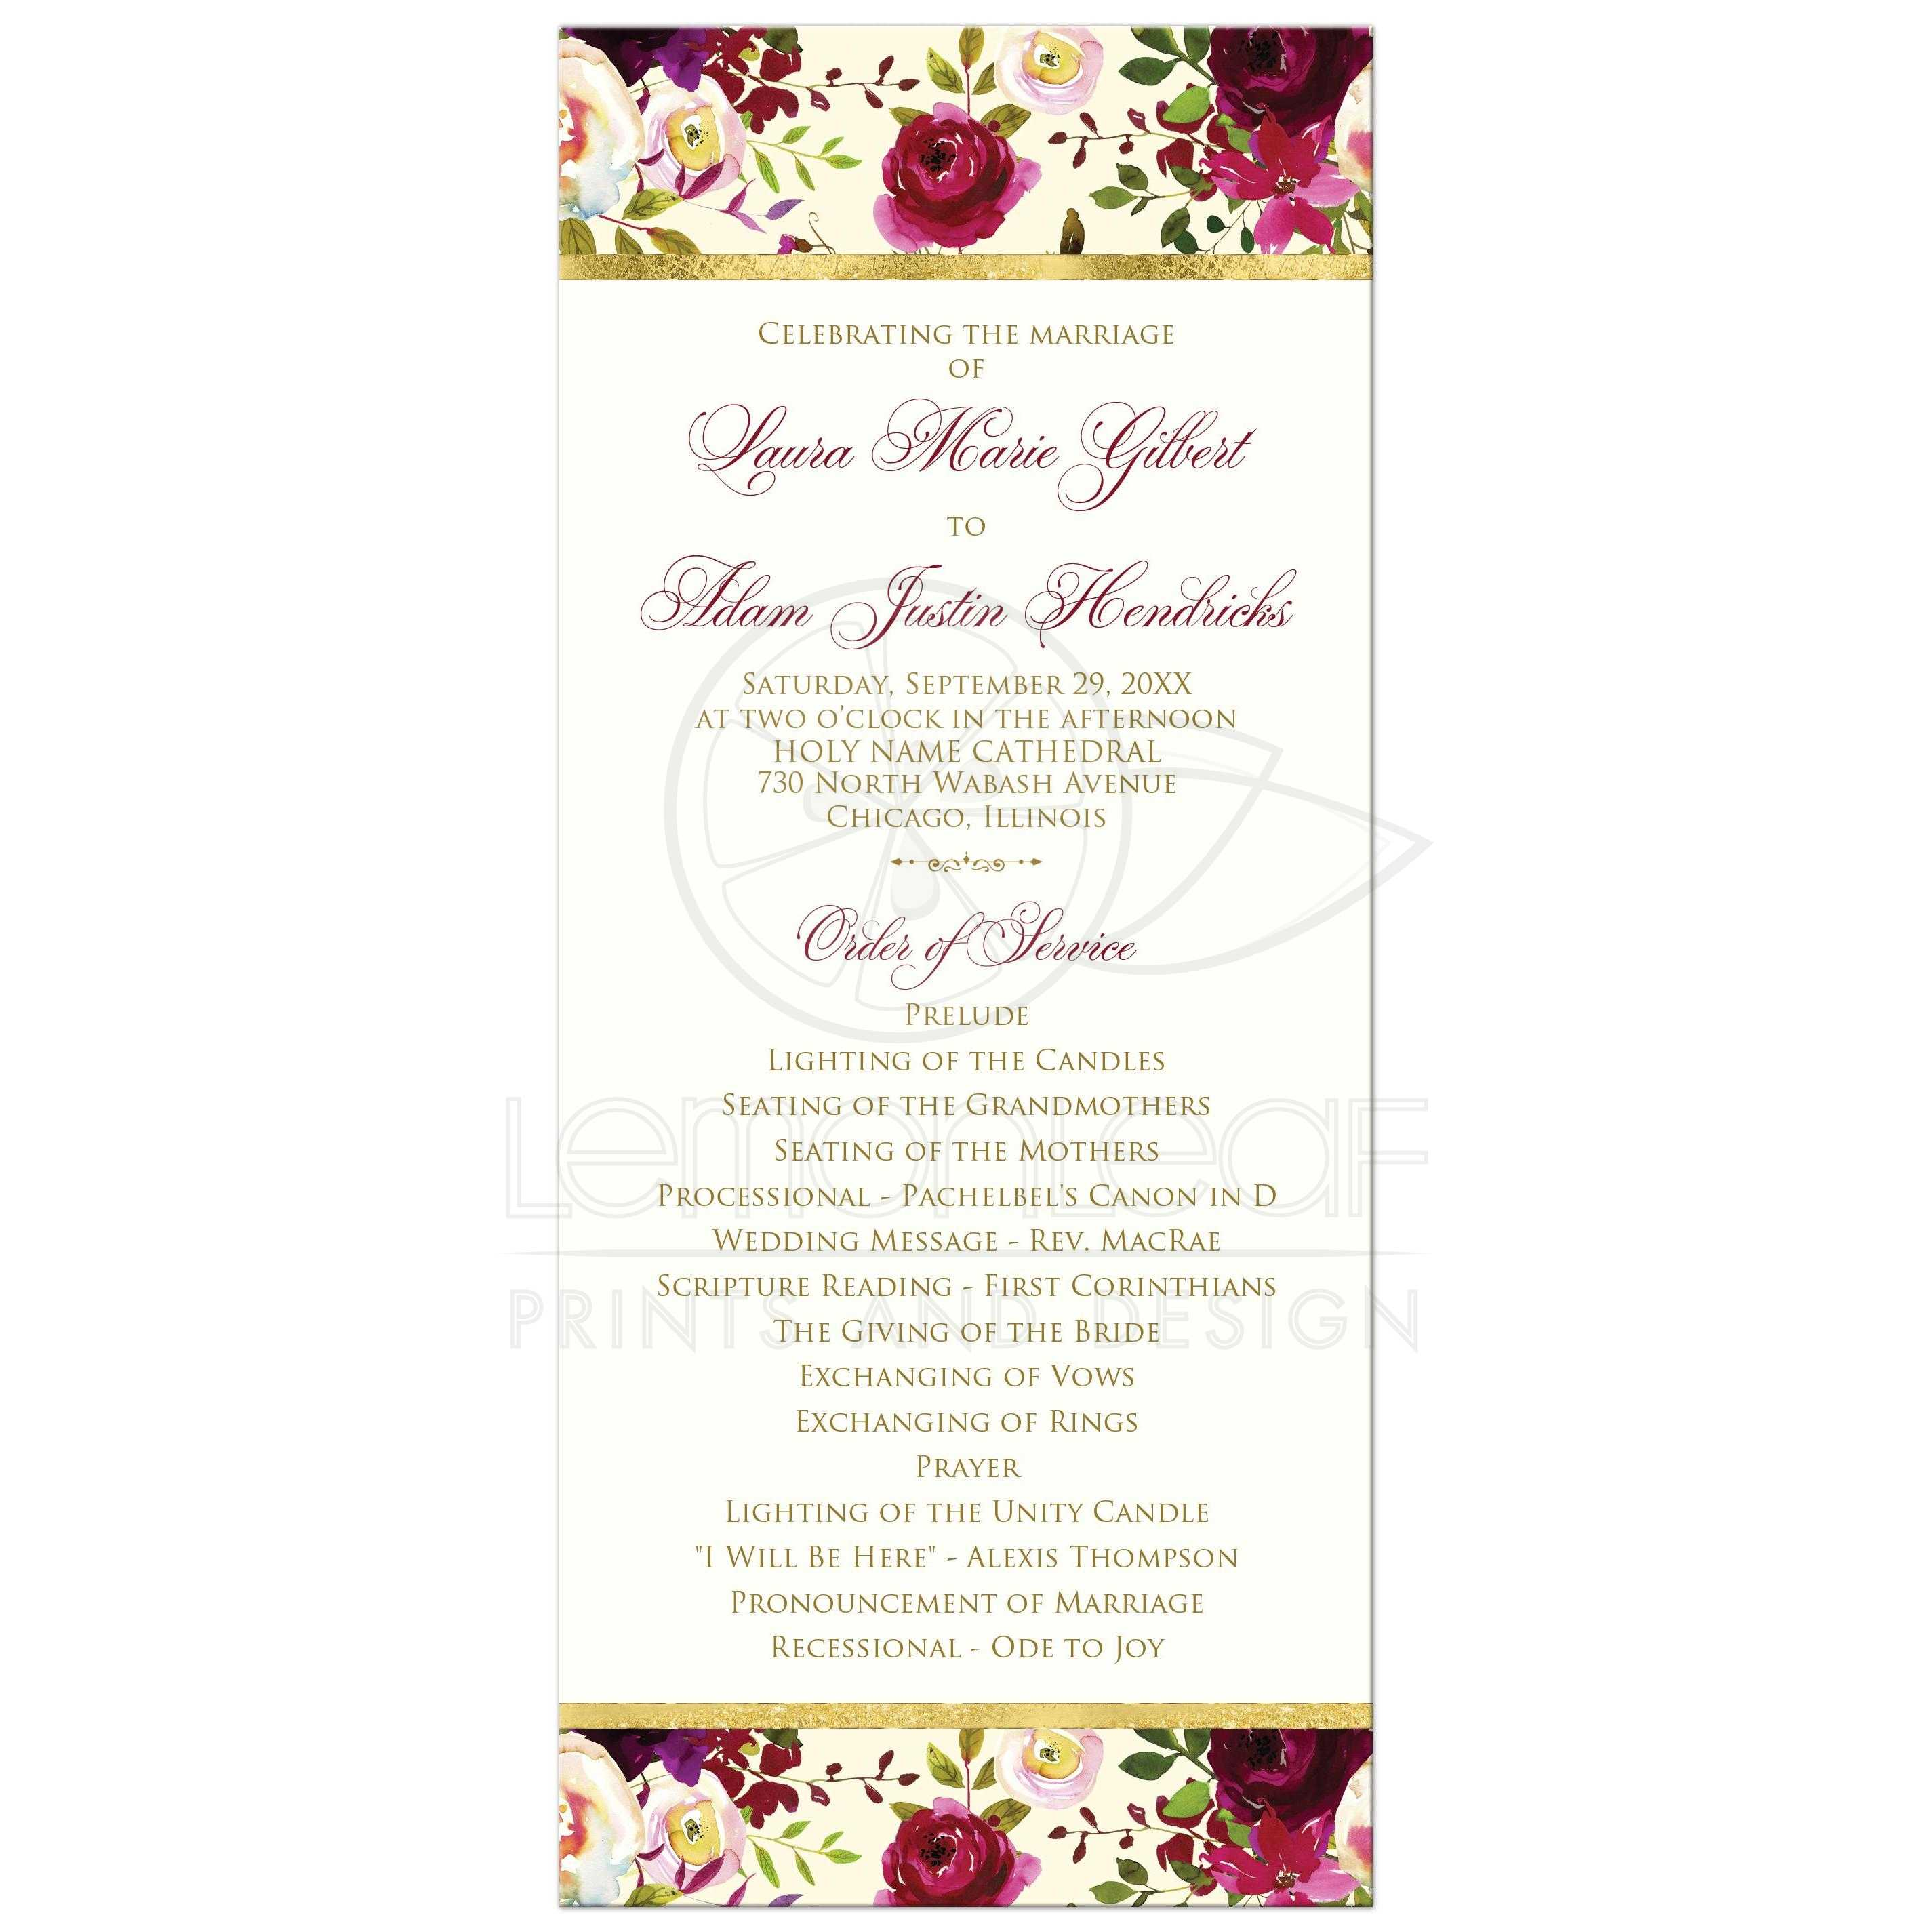 floral wedding program burgundy watercolor flowers feathers